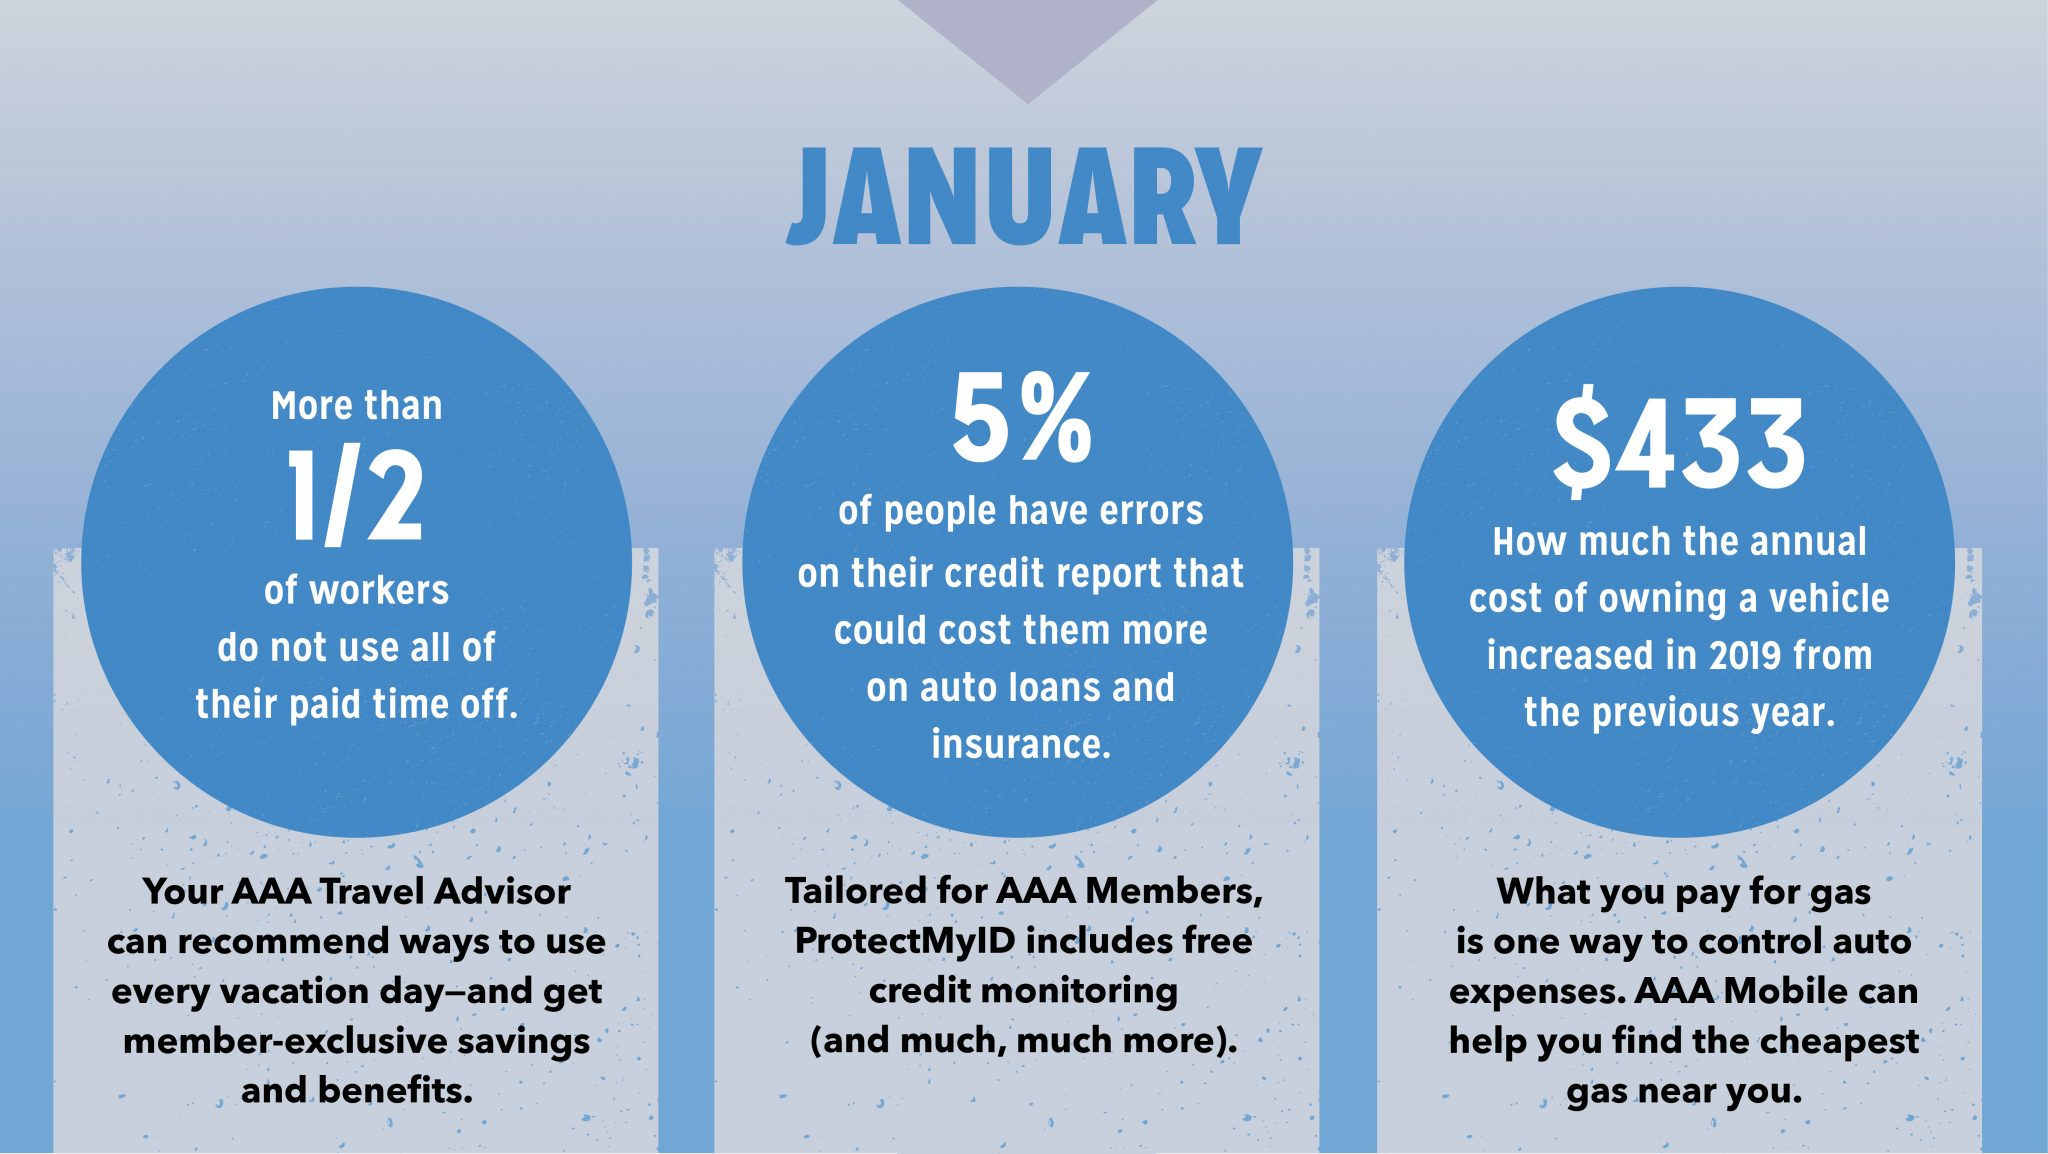 aaa-membership-benefits-january